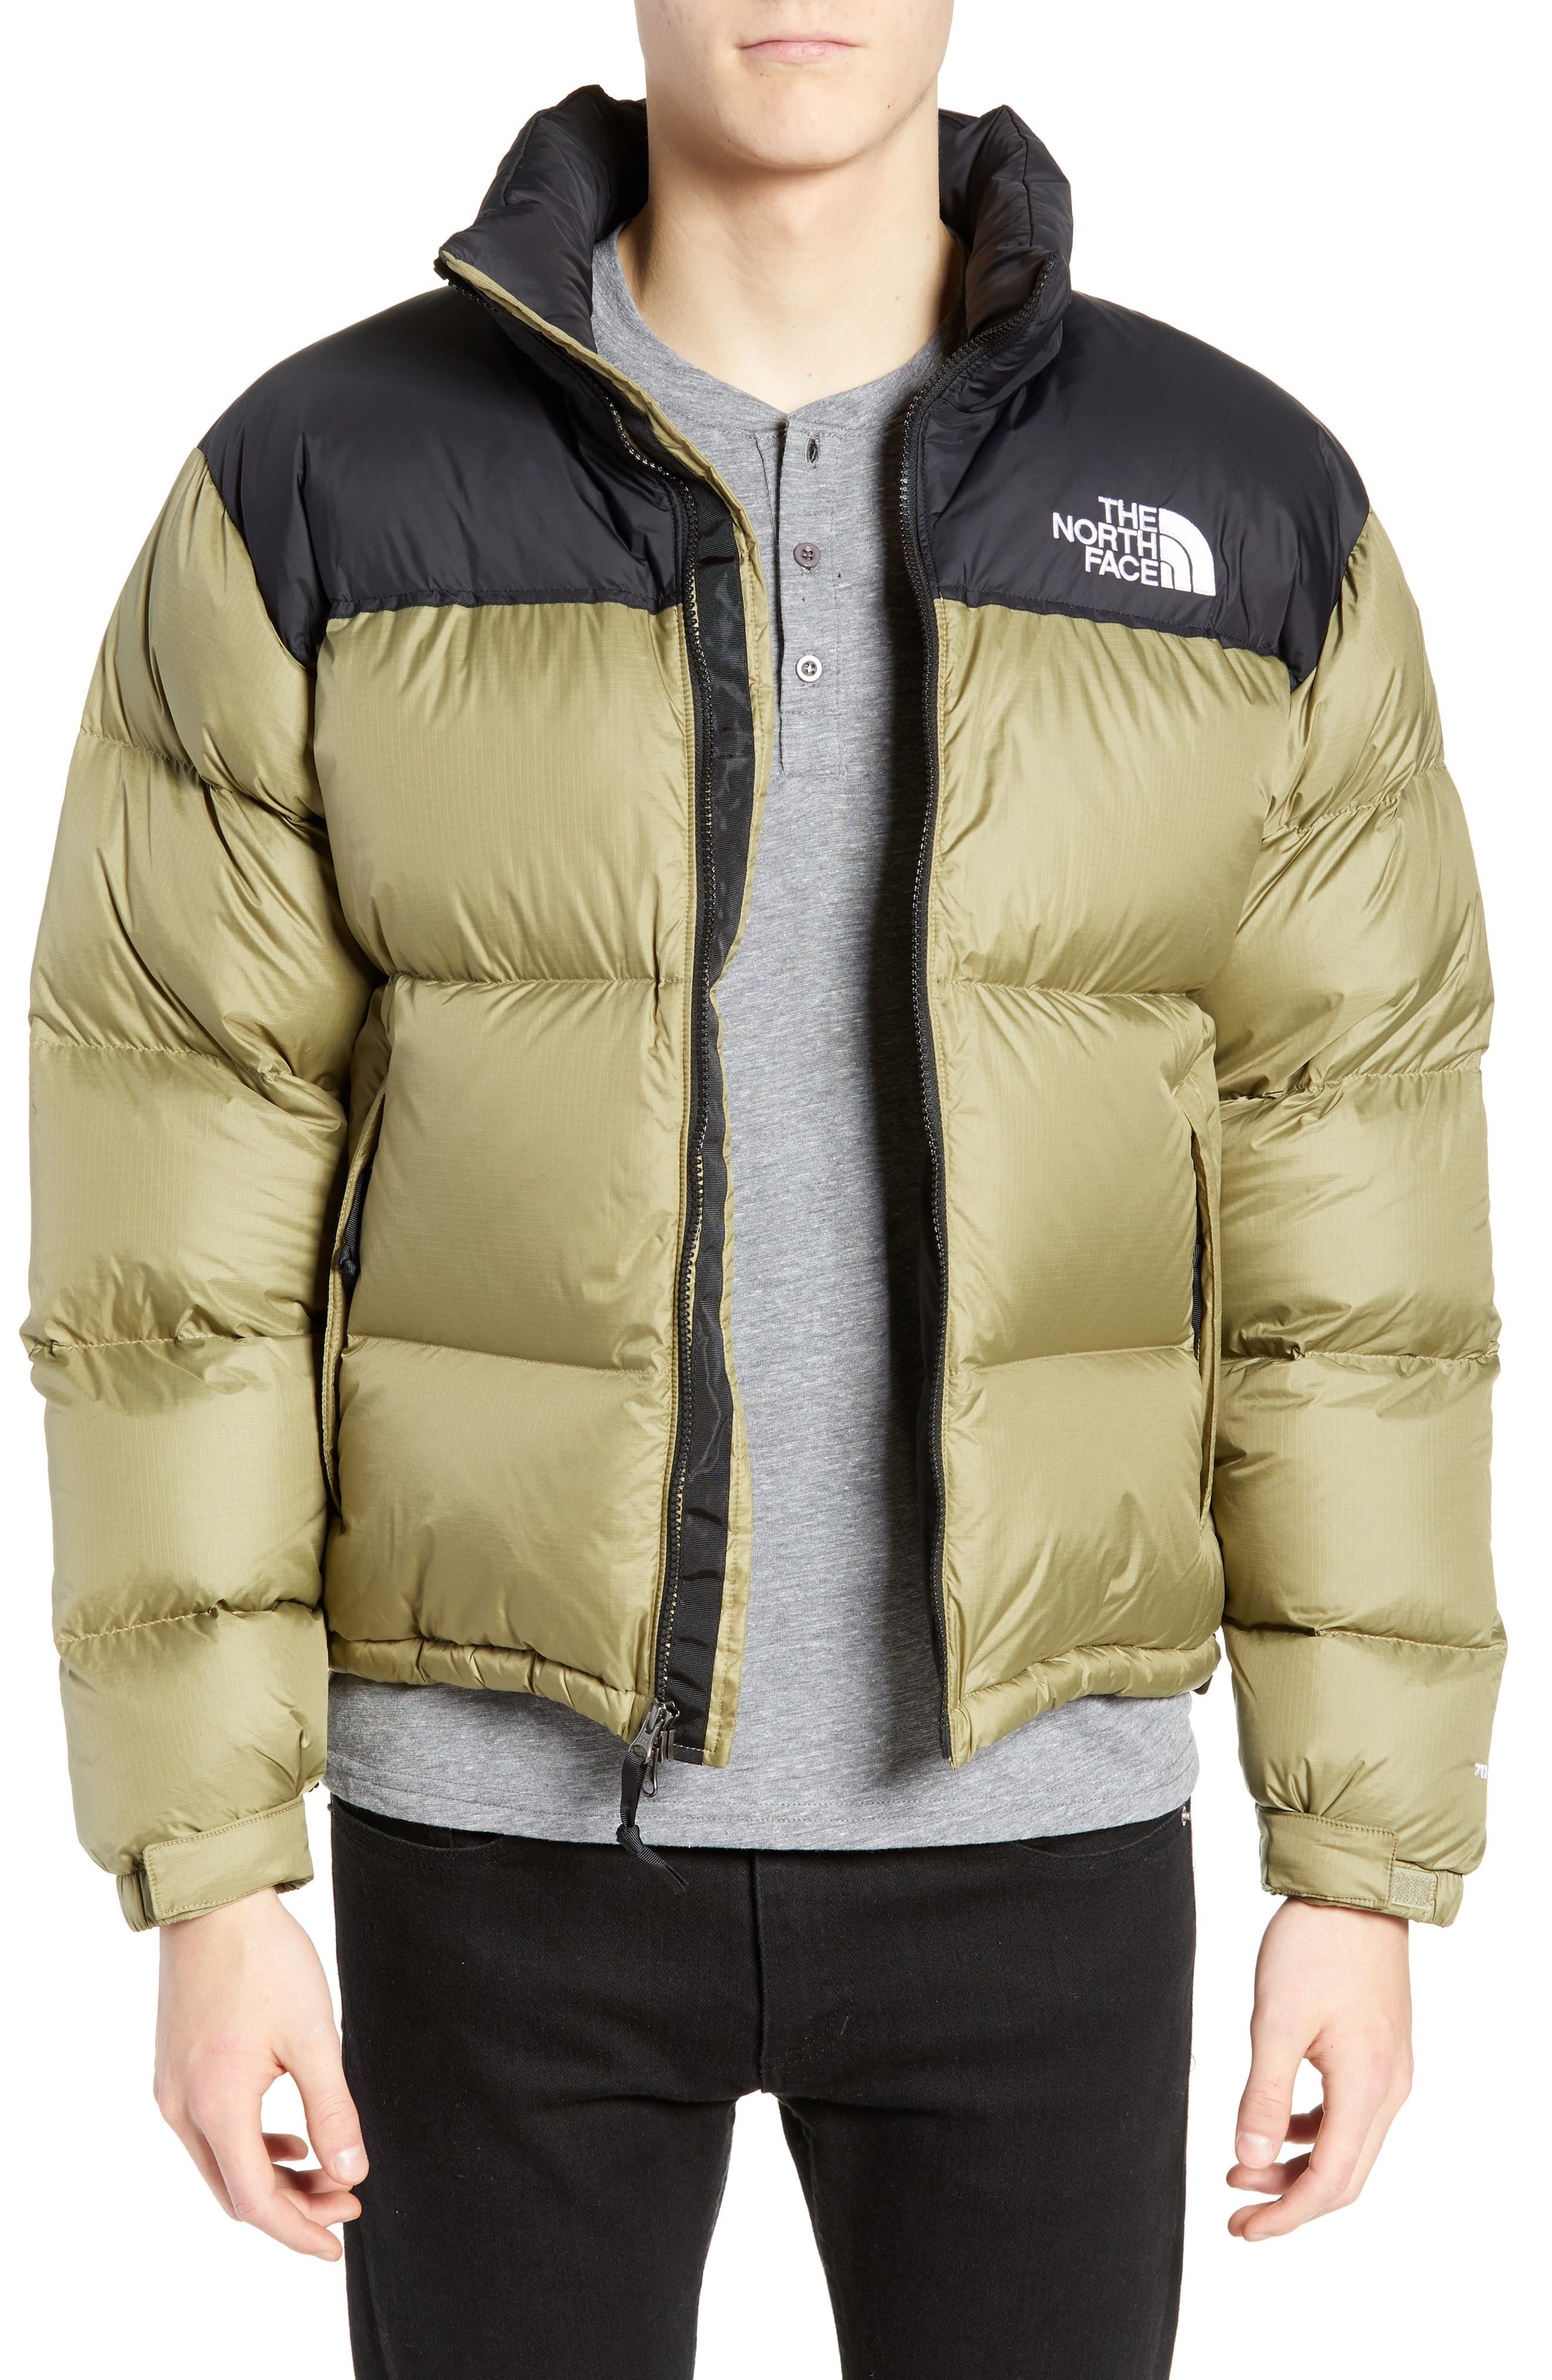 The North Face Nuptse 1996 Packable Quilted Down Jacket Nordstrom In 2021 Best Mens Winter Jackets Winter Jacket Men Down Jacket [ 4048 x 2640 Pixel ]